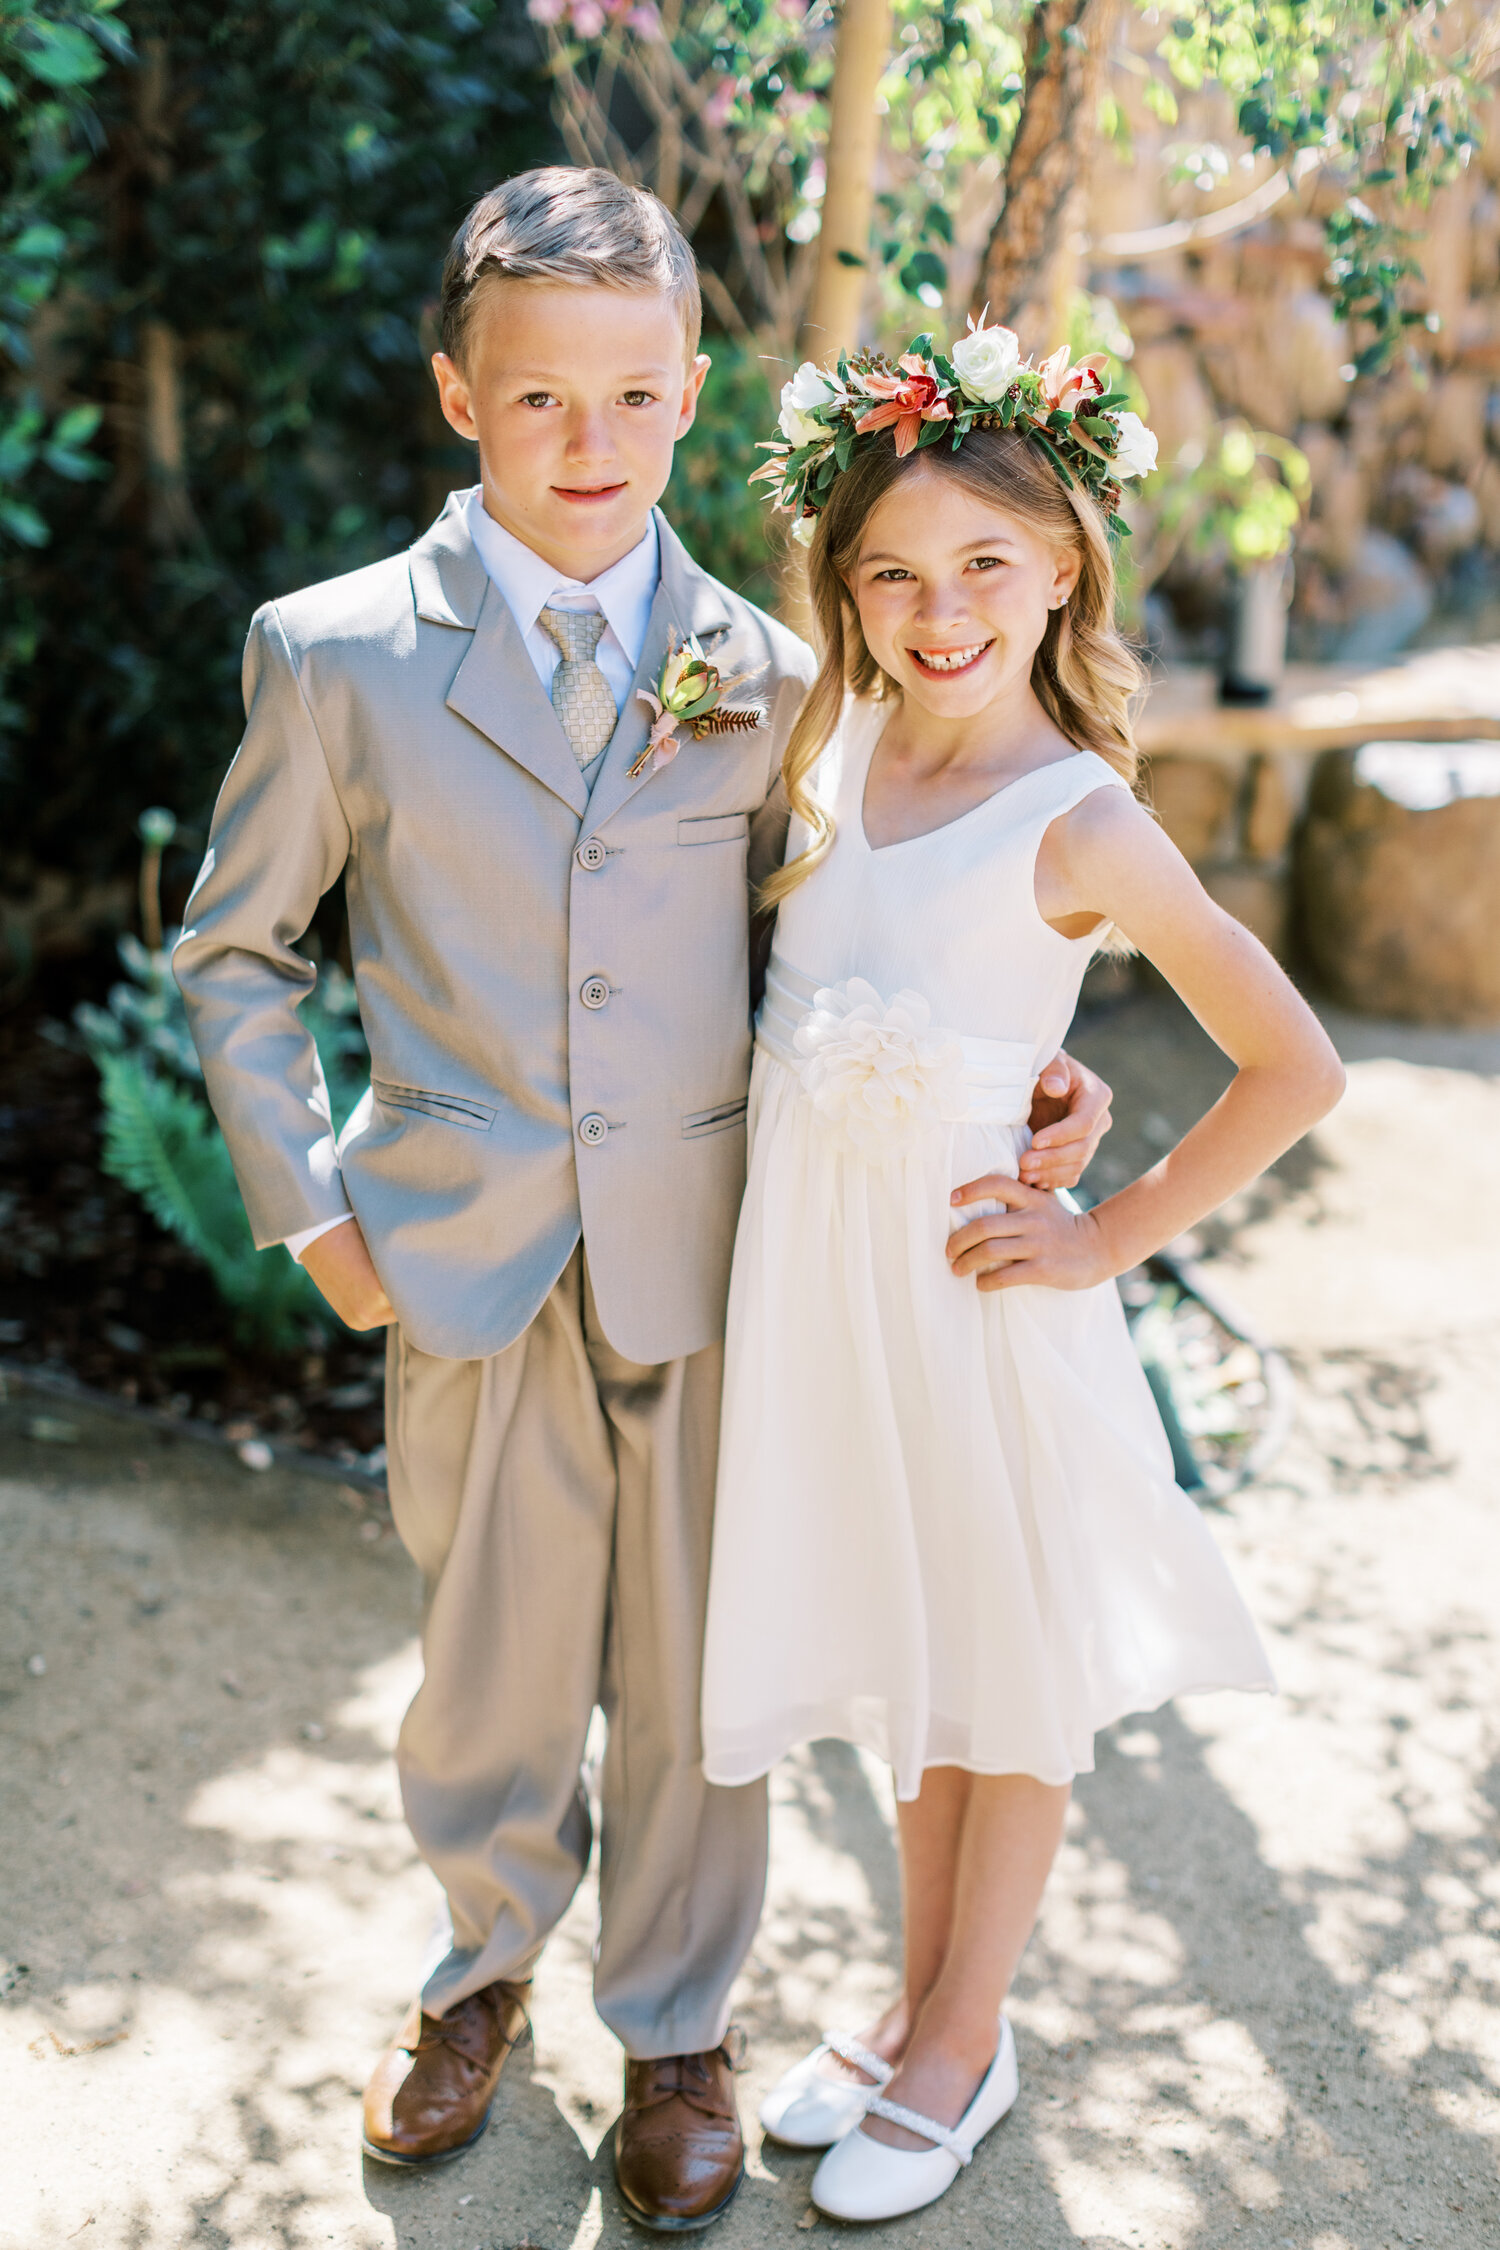 www.santabarbarawedding.com   Events by Fran   Ever After Petite Venue   Kendall Ann Photo   Tangled Lotus   Flower Girl and Ring Bearer